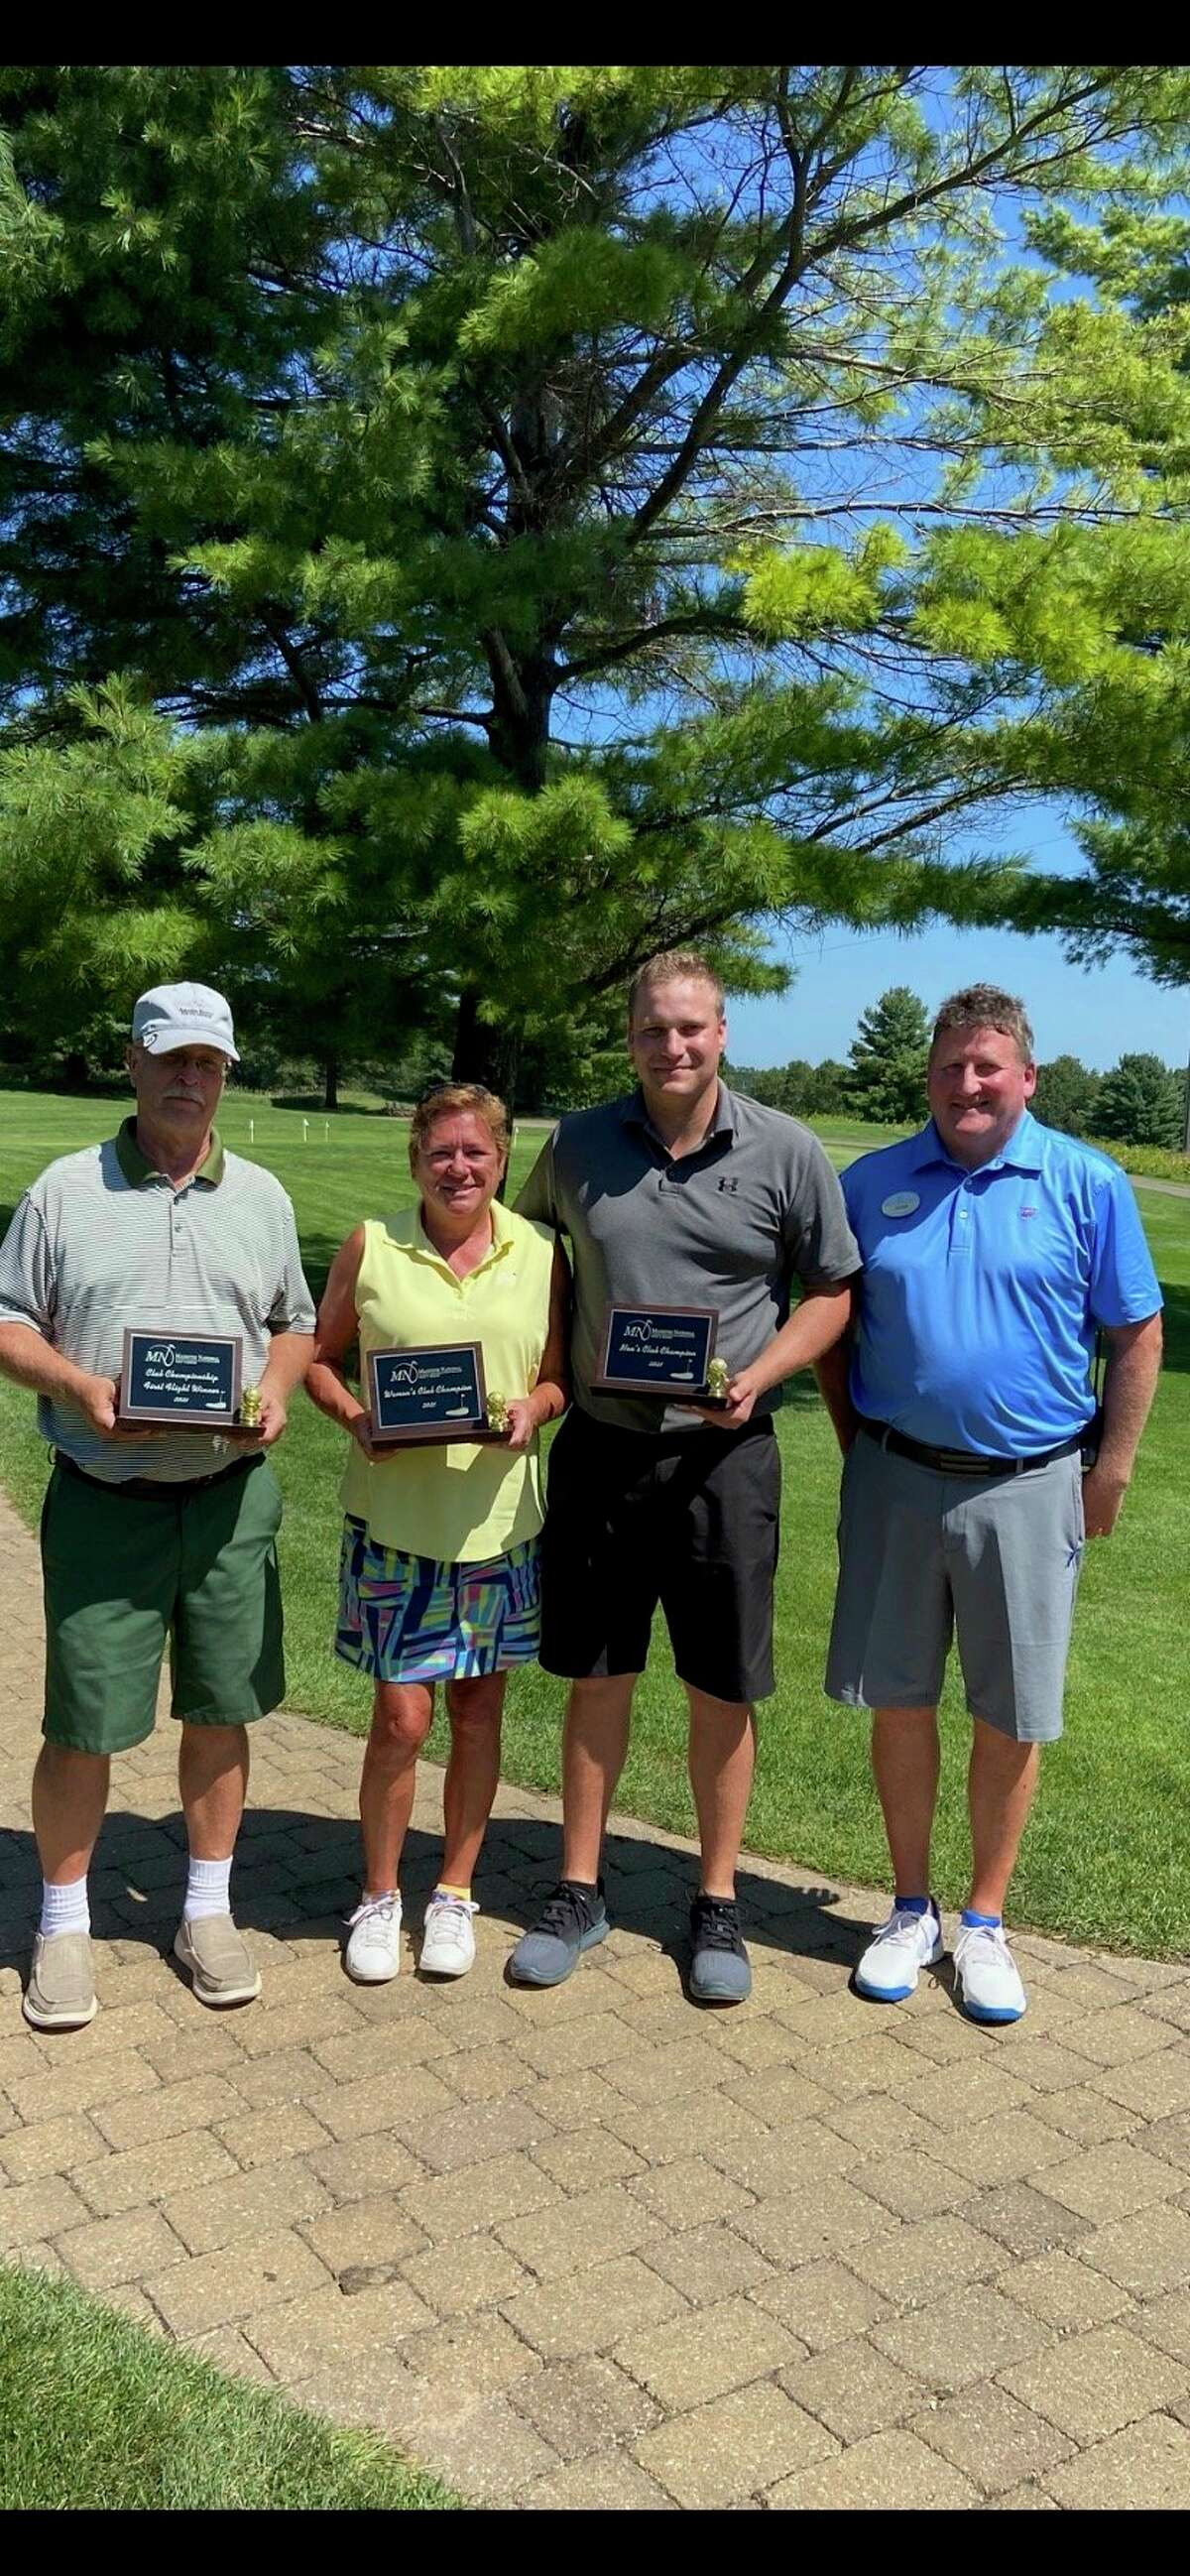 The three (left to right: Mark Niesen, Julie Brakora, and Zach Bialik) Manistee National Golf & Resort Club Championship winners alongside DenisMeikle, the Director of Golf Operations. (Courtesy photo)